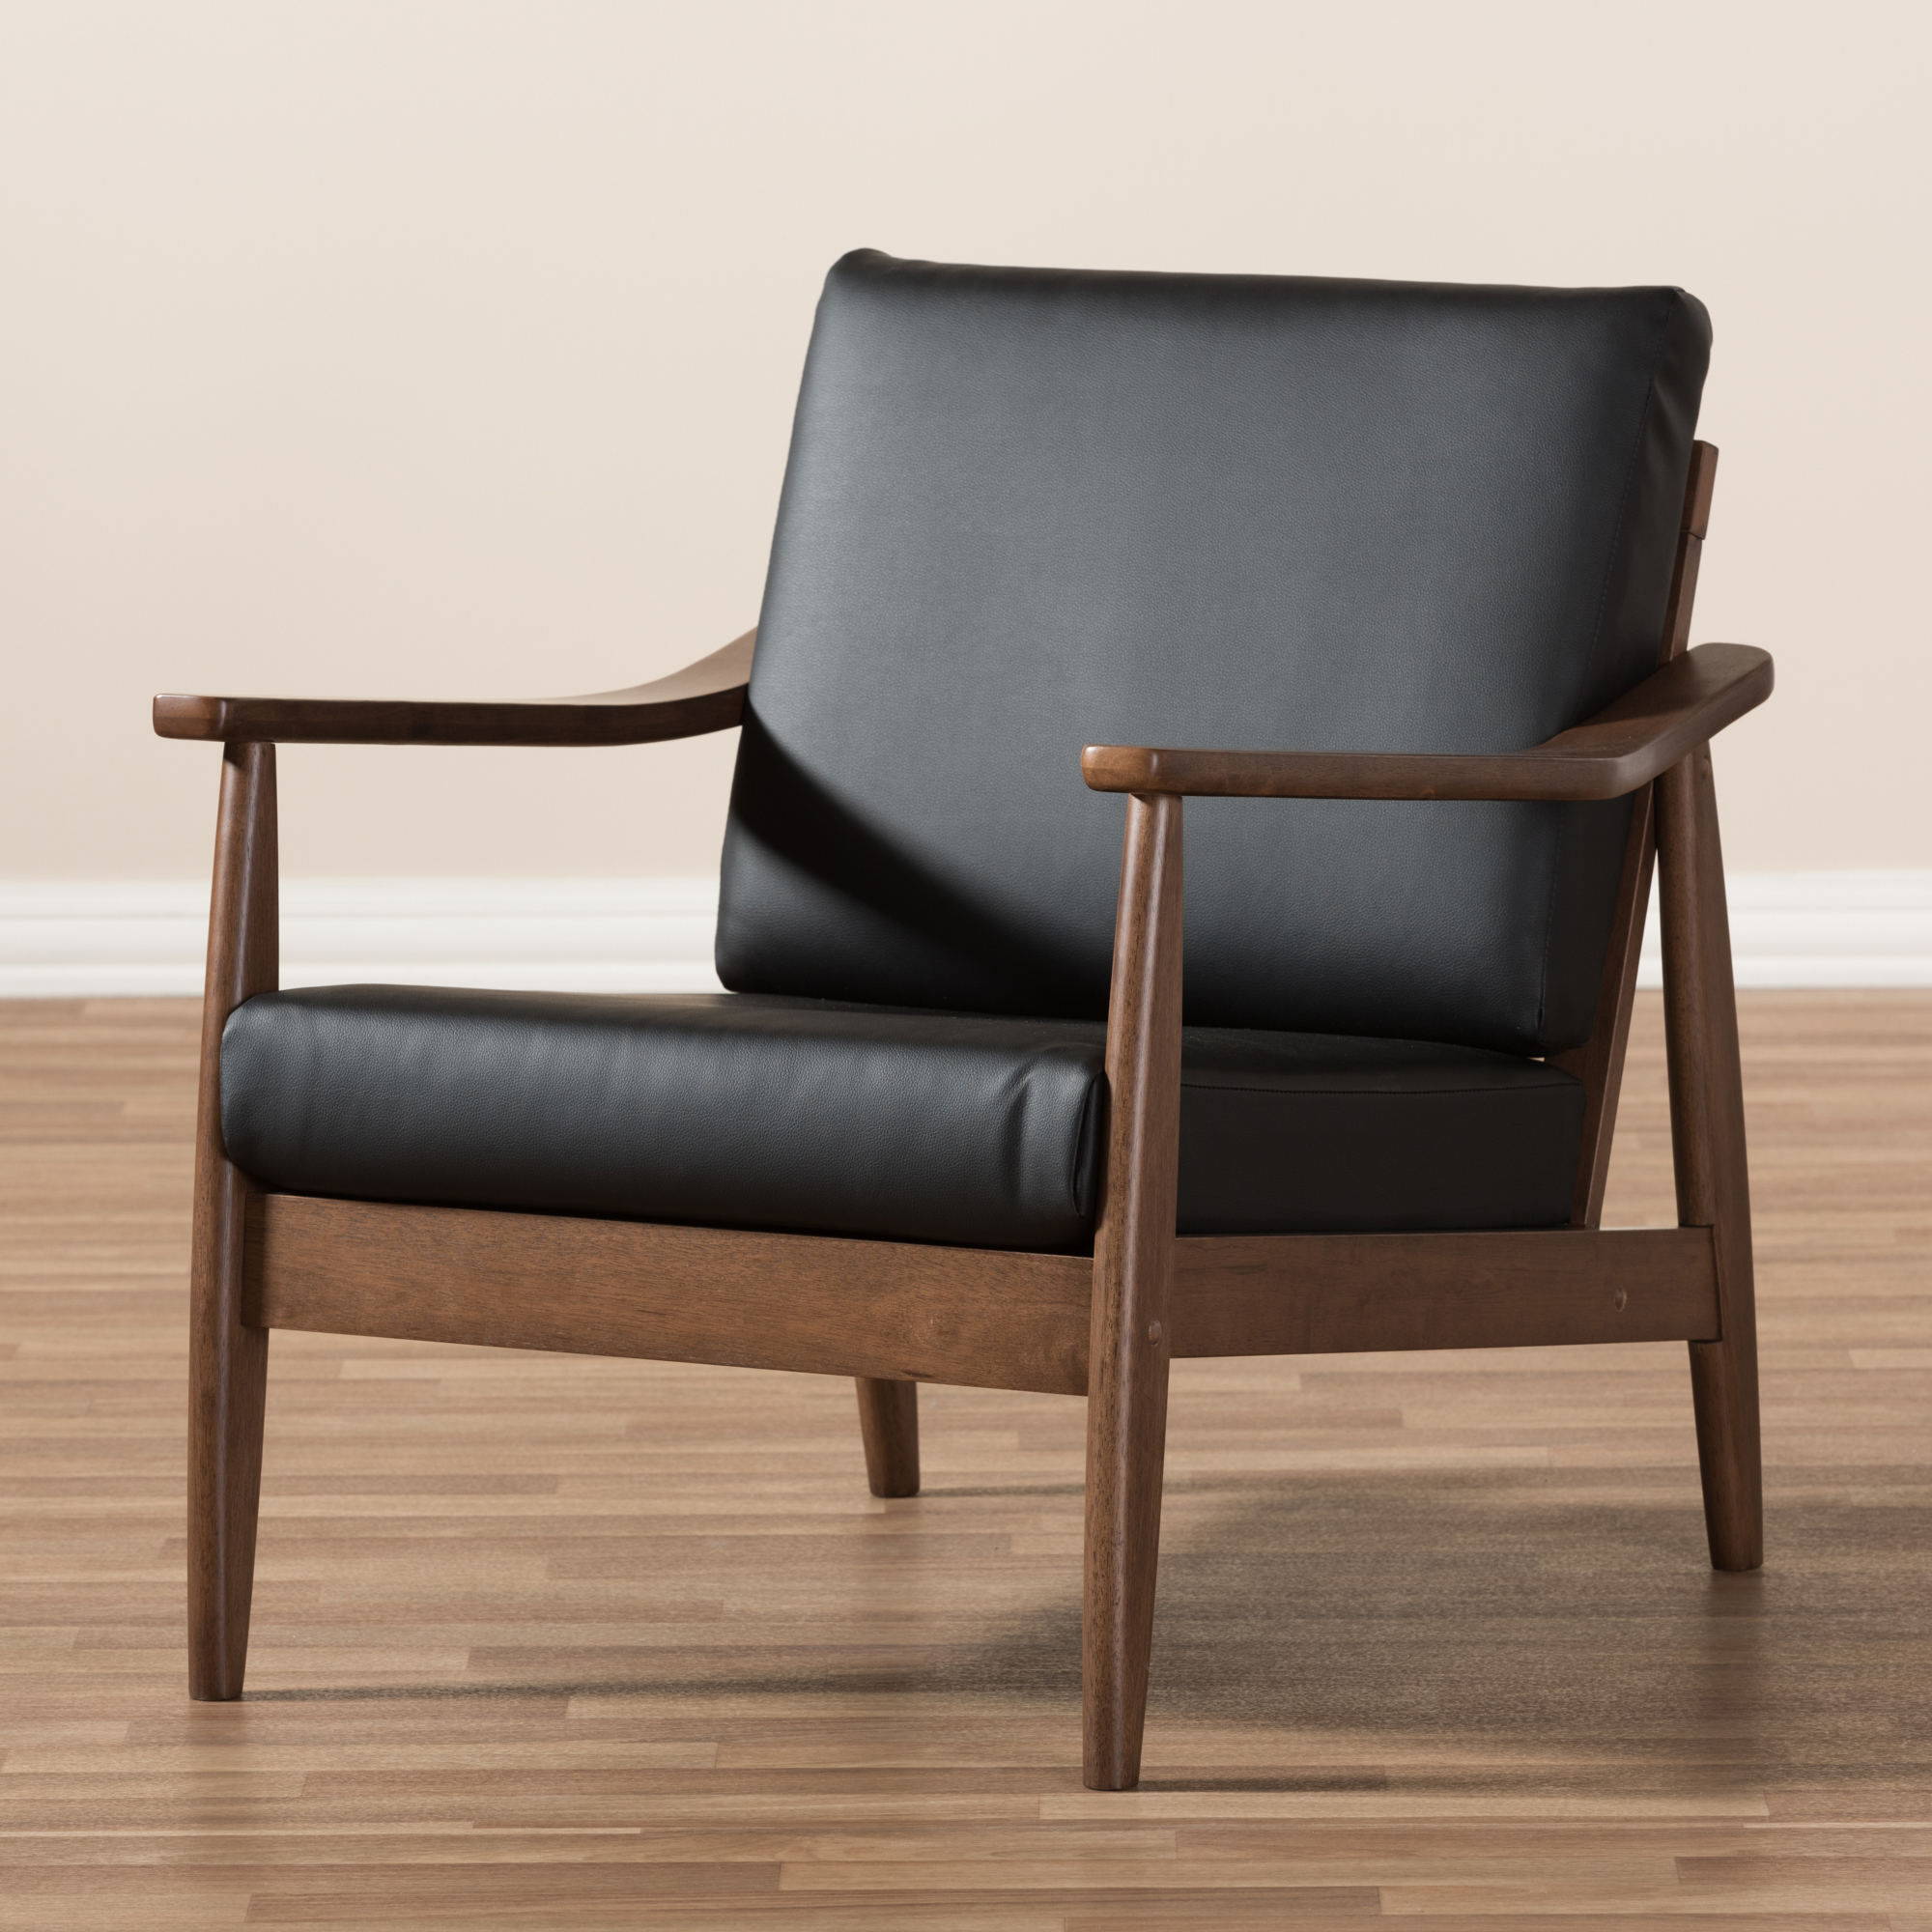 ... Baxton Studio Venza Mid Century Modern Walnut Wood Black Faux Leather  Lounge Chair   IEVenza ...